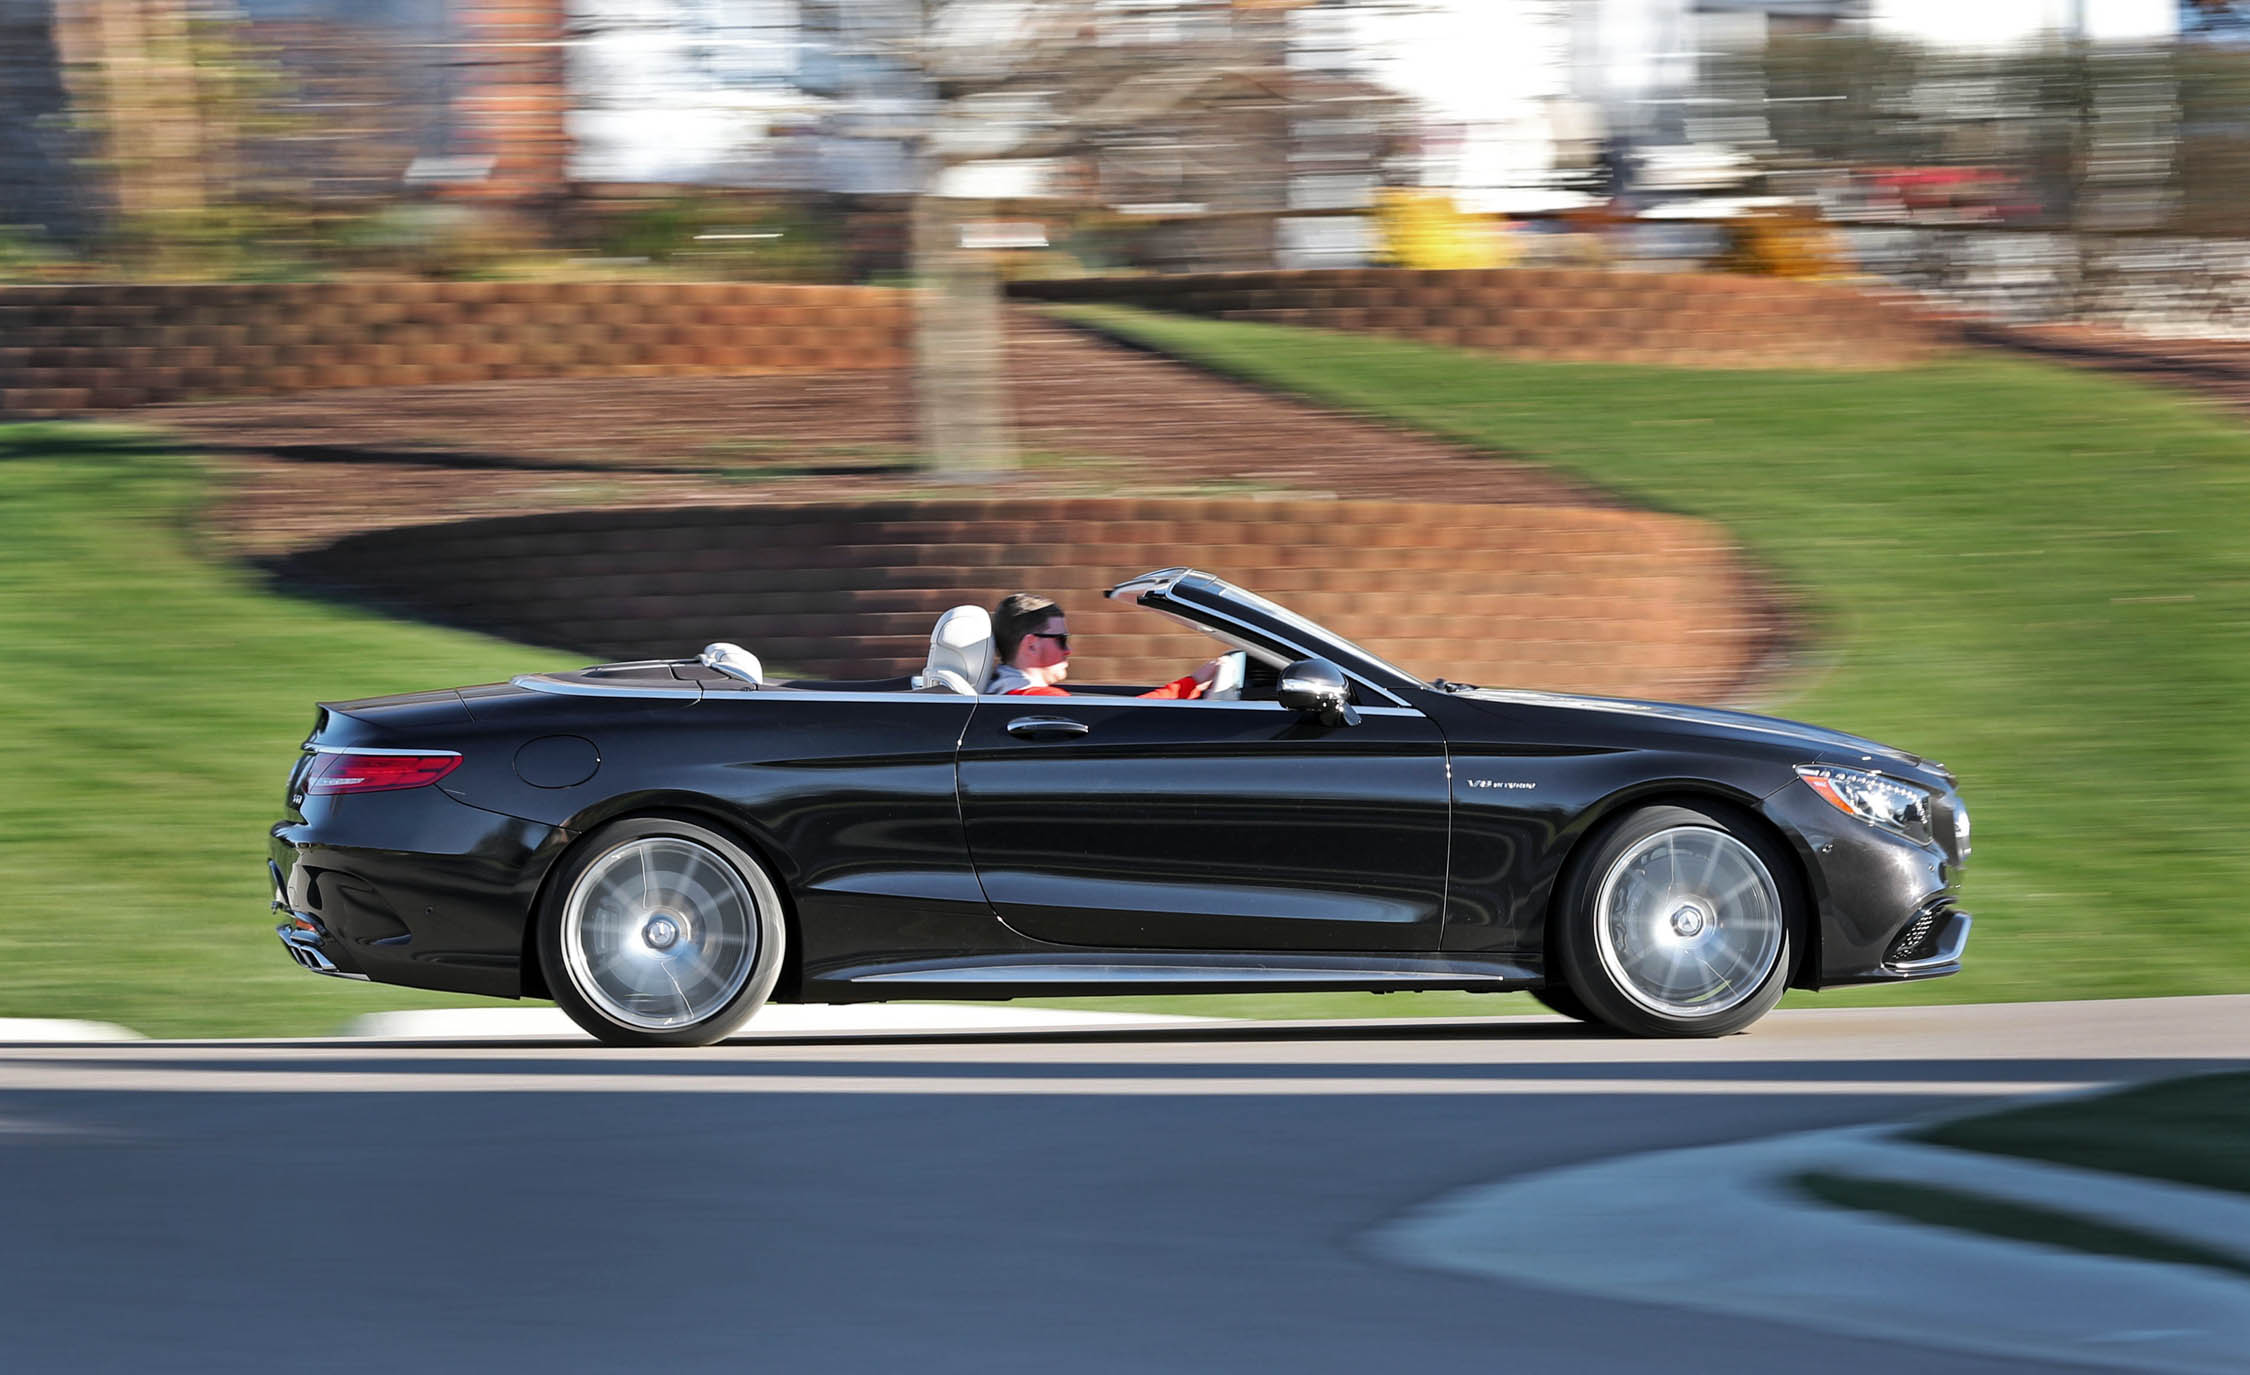 2017 Mercedes Amg S63 Cabriolet Test Drive Side View Roof Open (Photo 38 of 38)